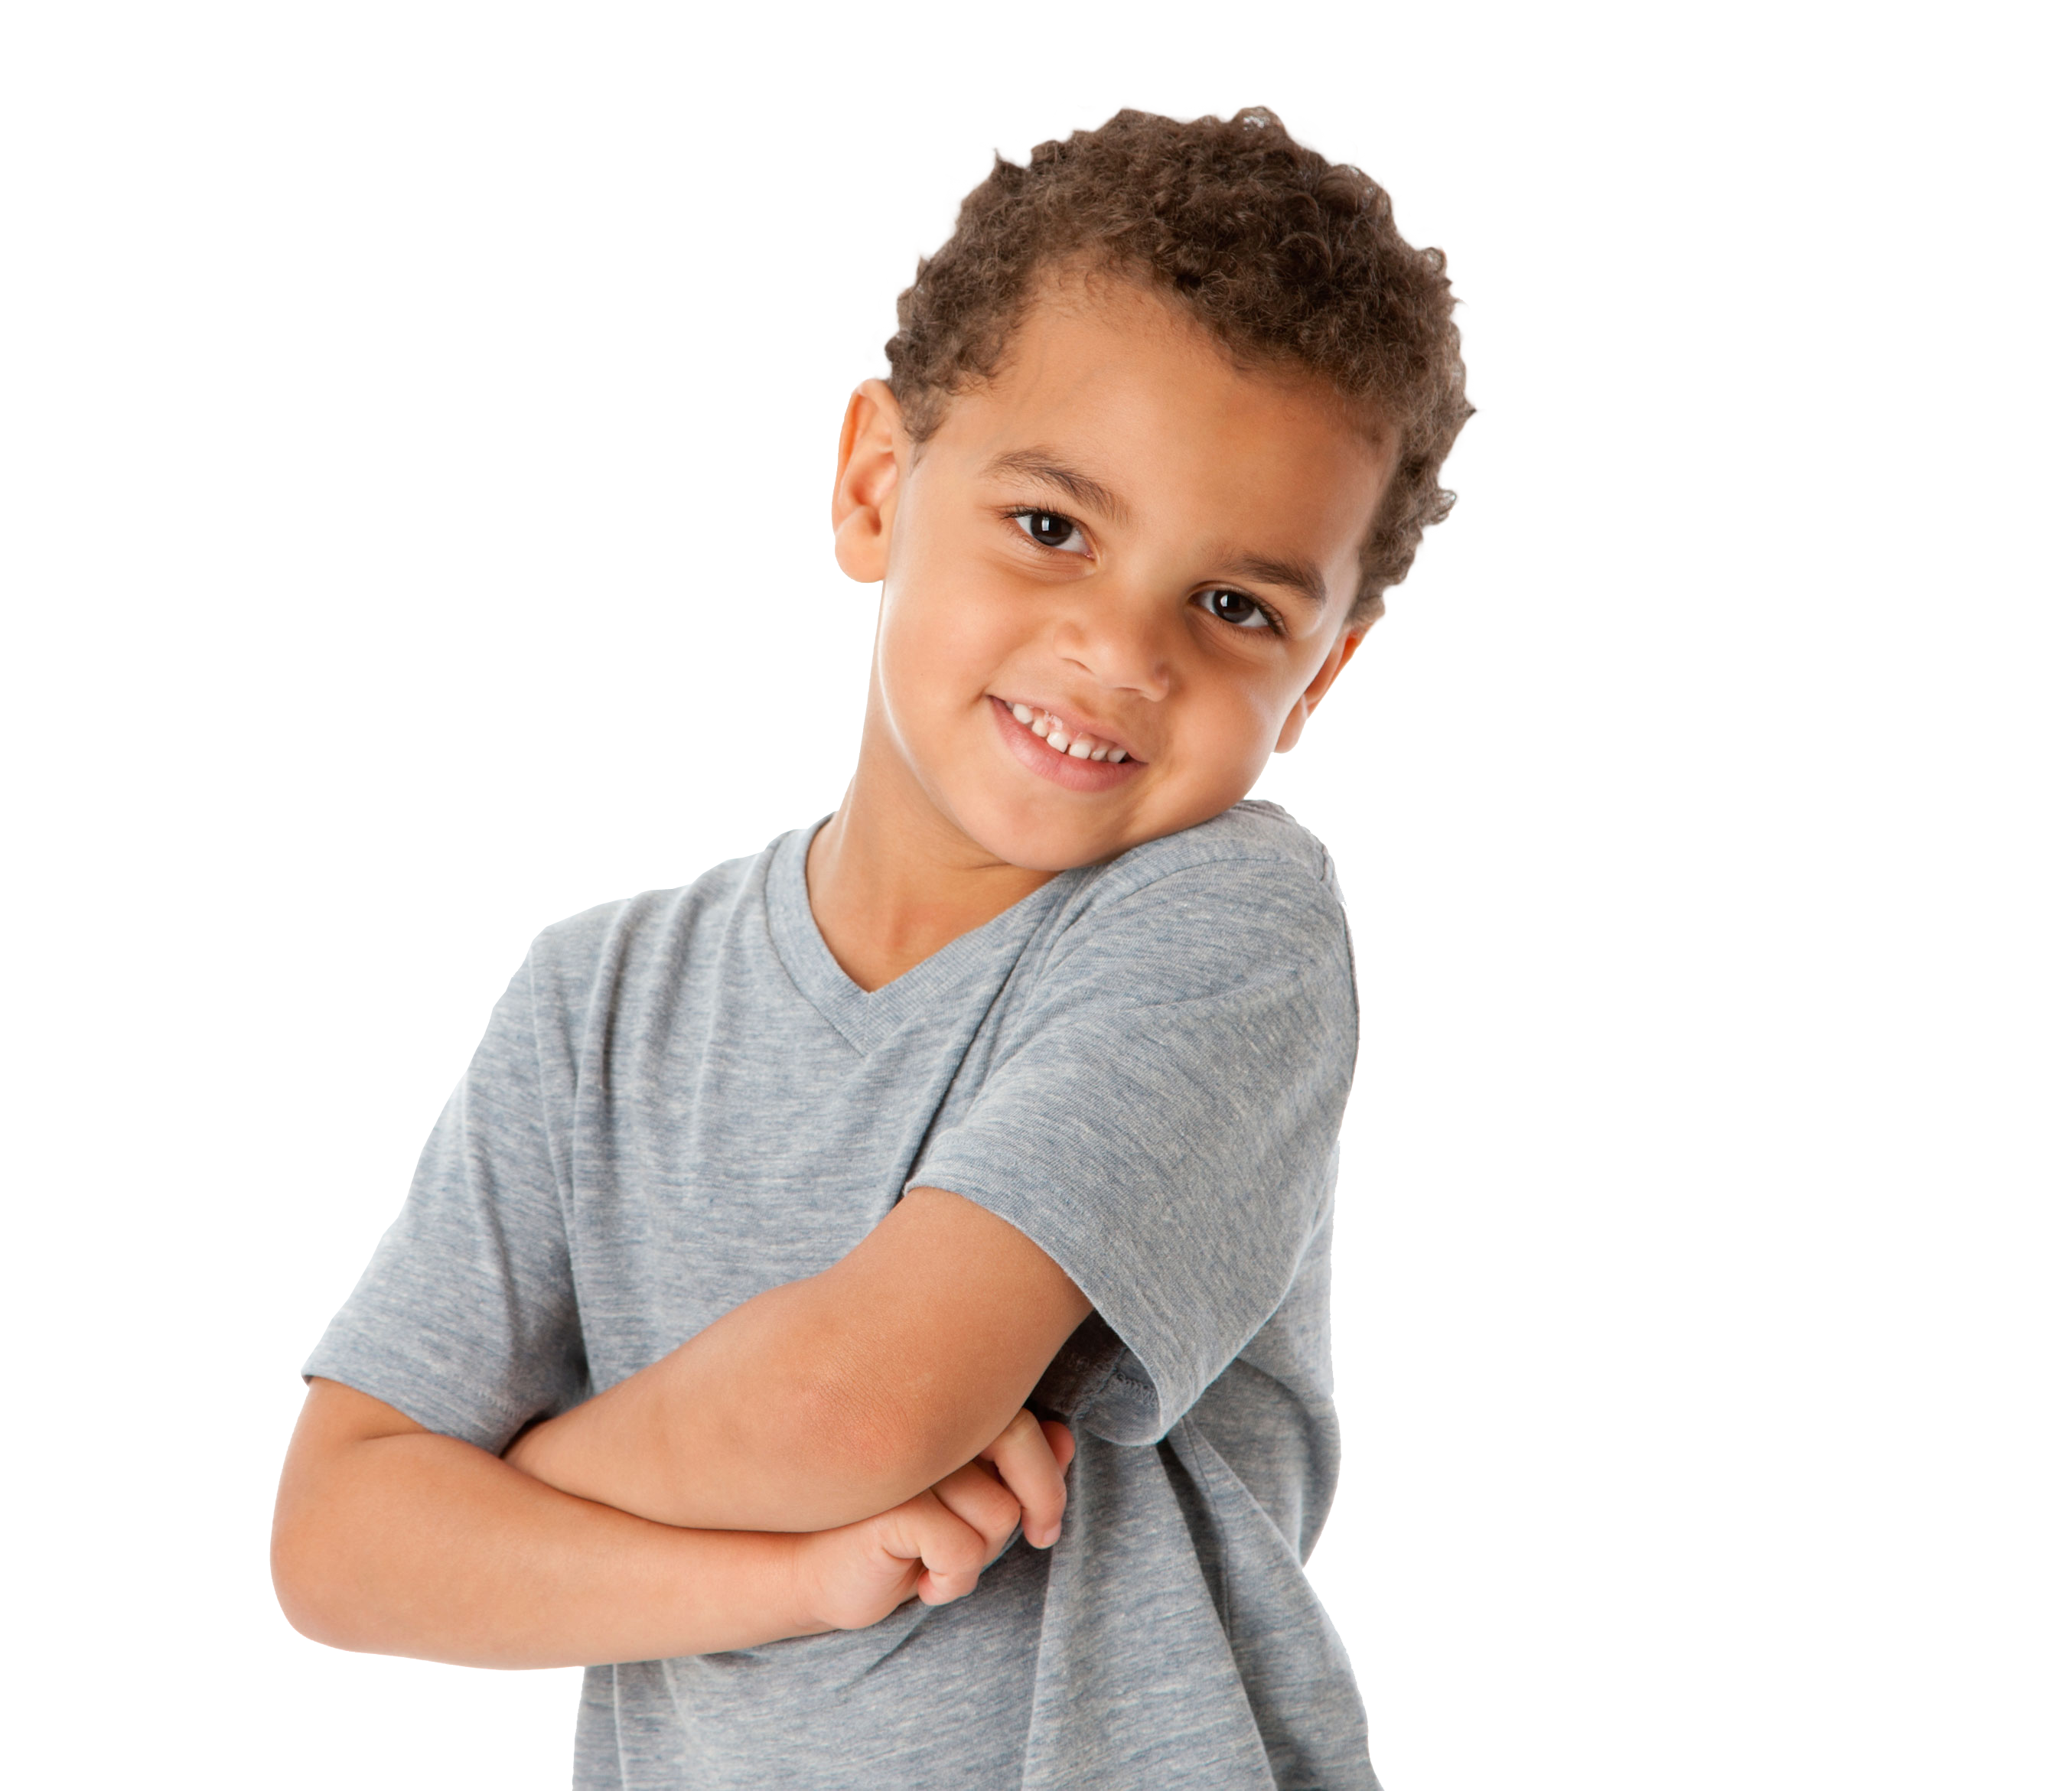 PlusPng pluspng.com Child PNG PlusPng pluspng.com - Kids Smiling PNG HD . - Little Boy PNG HD